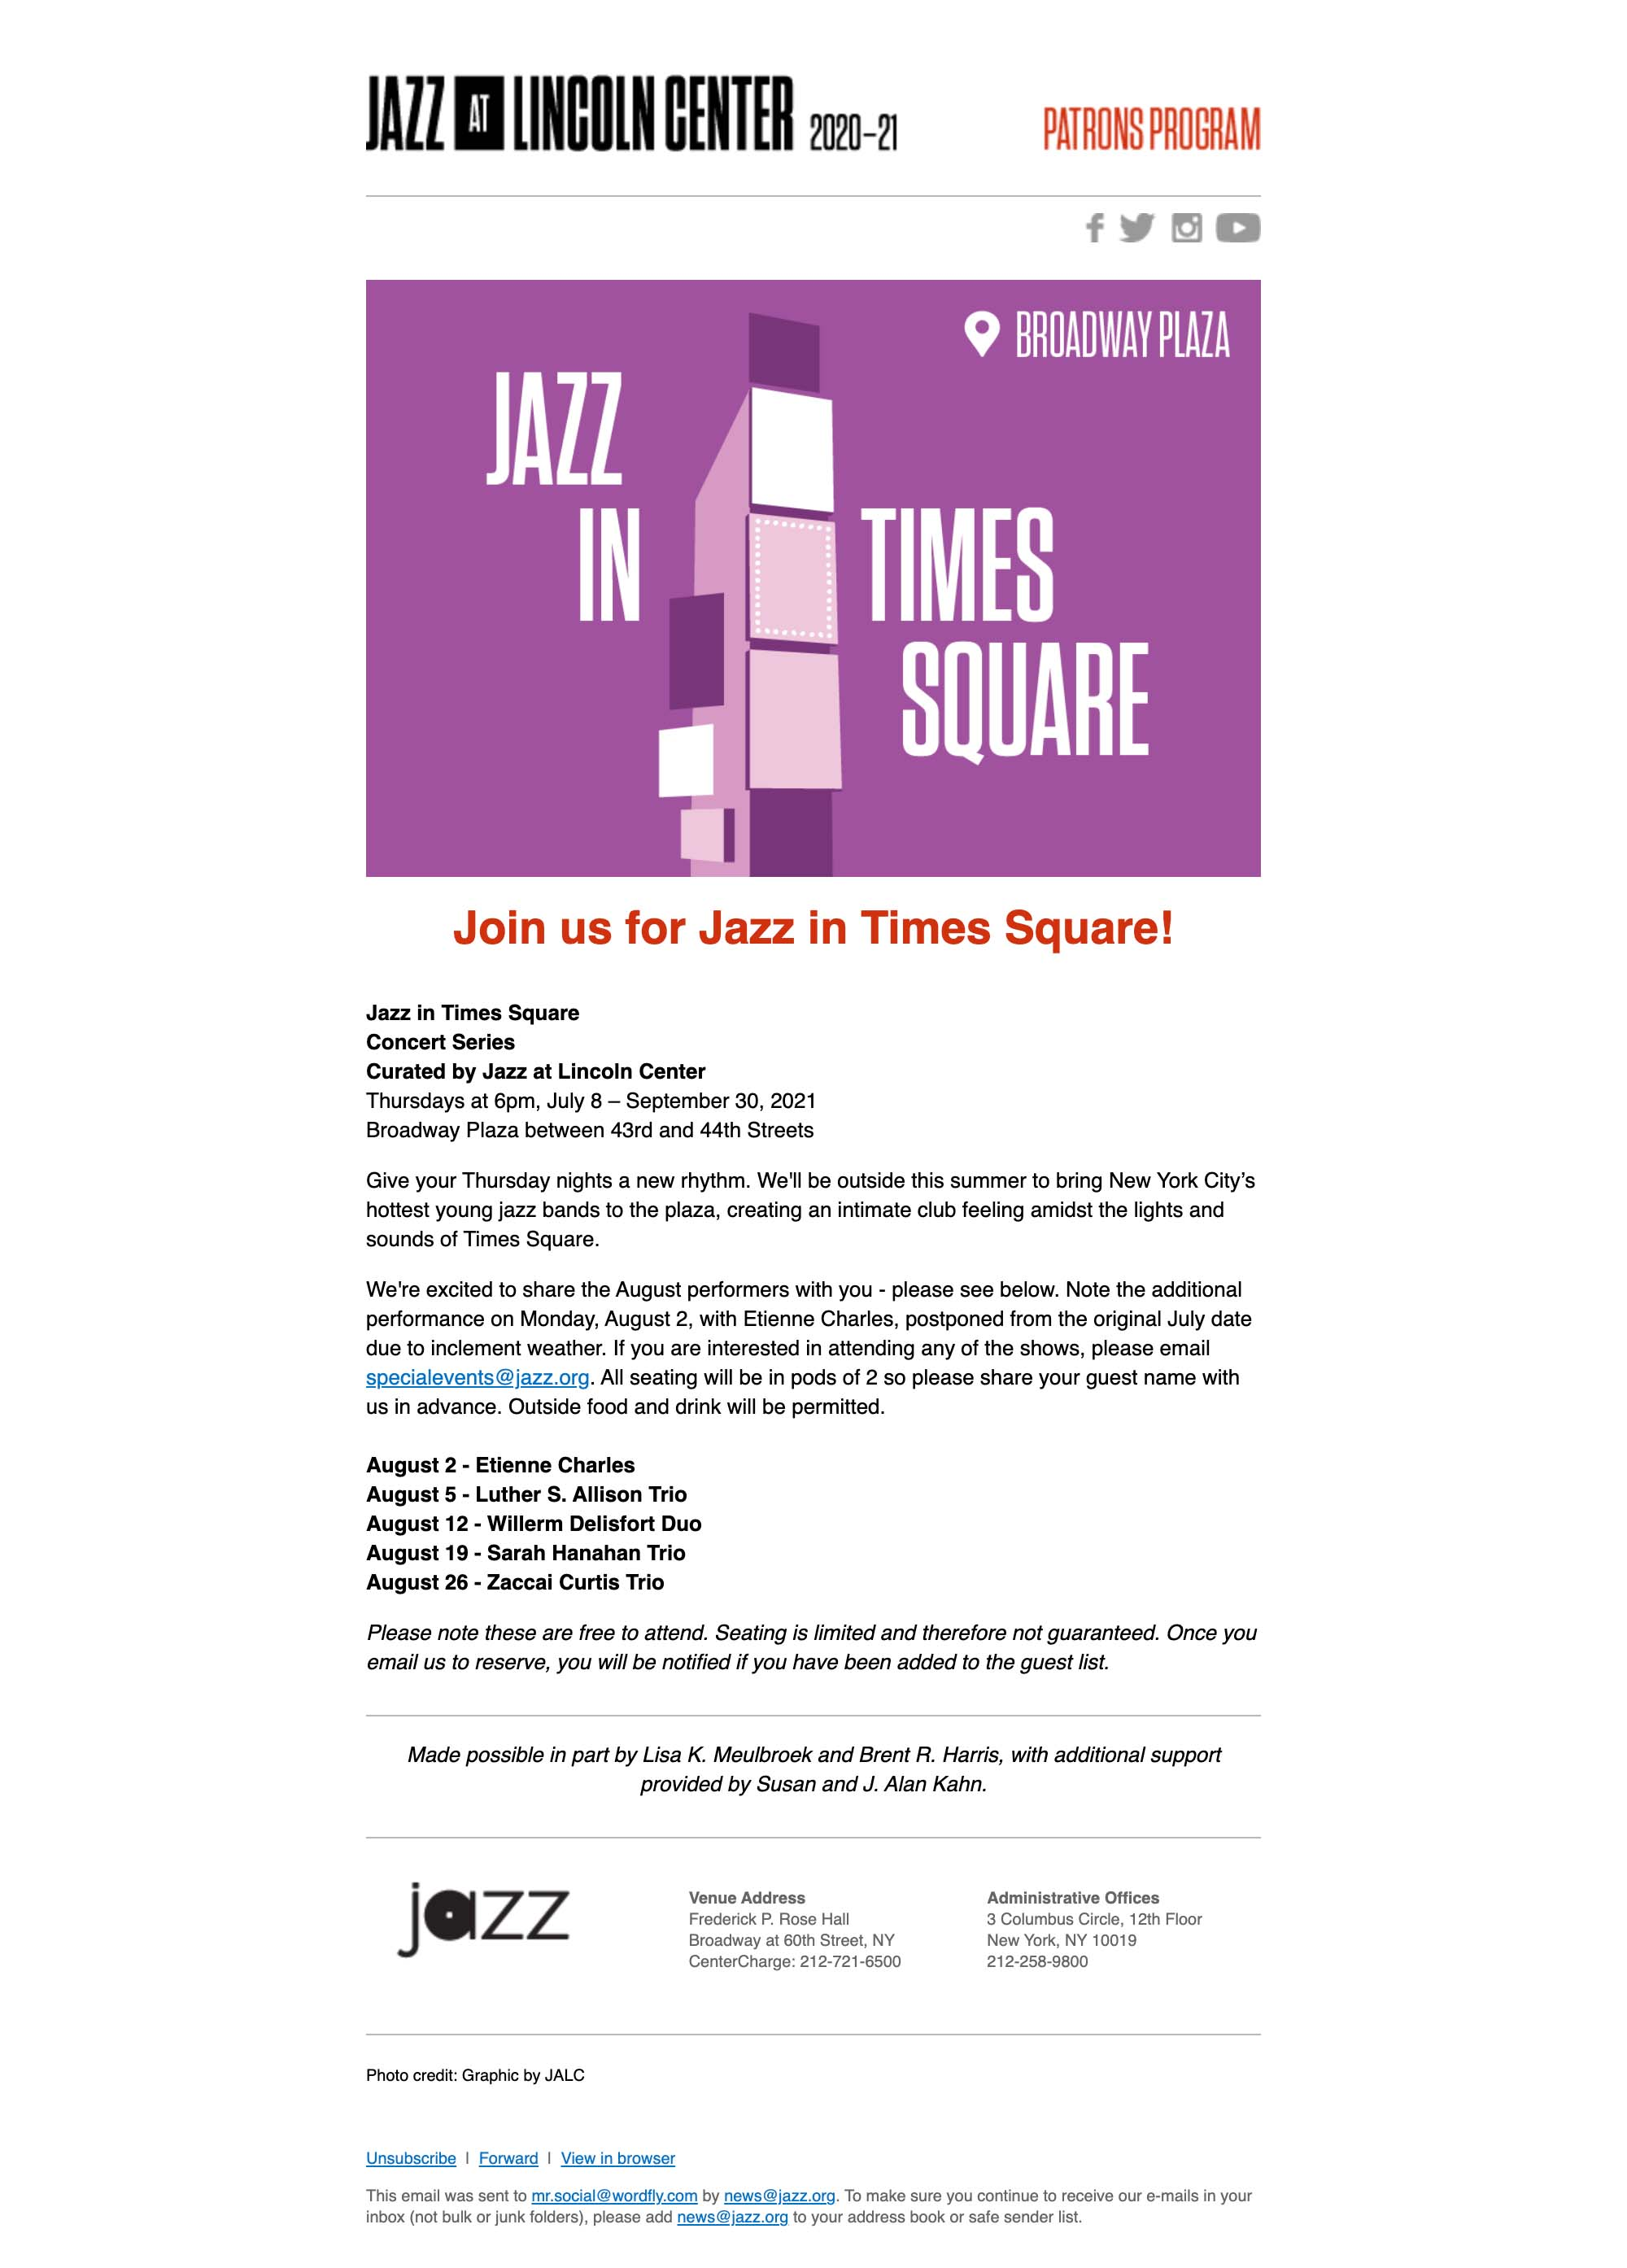 You're Invited to Jazz in Times Square in August! - desktop view